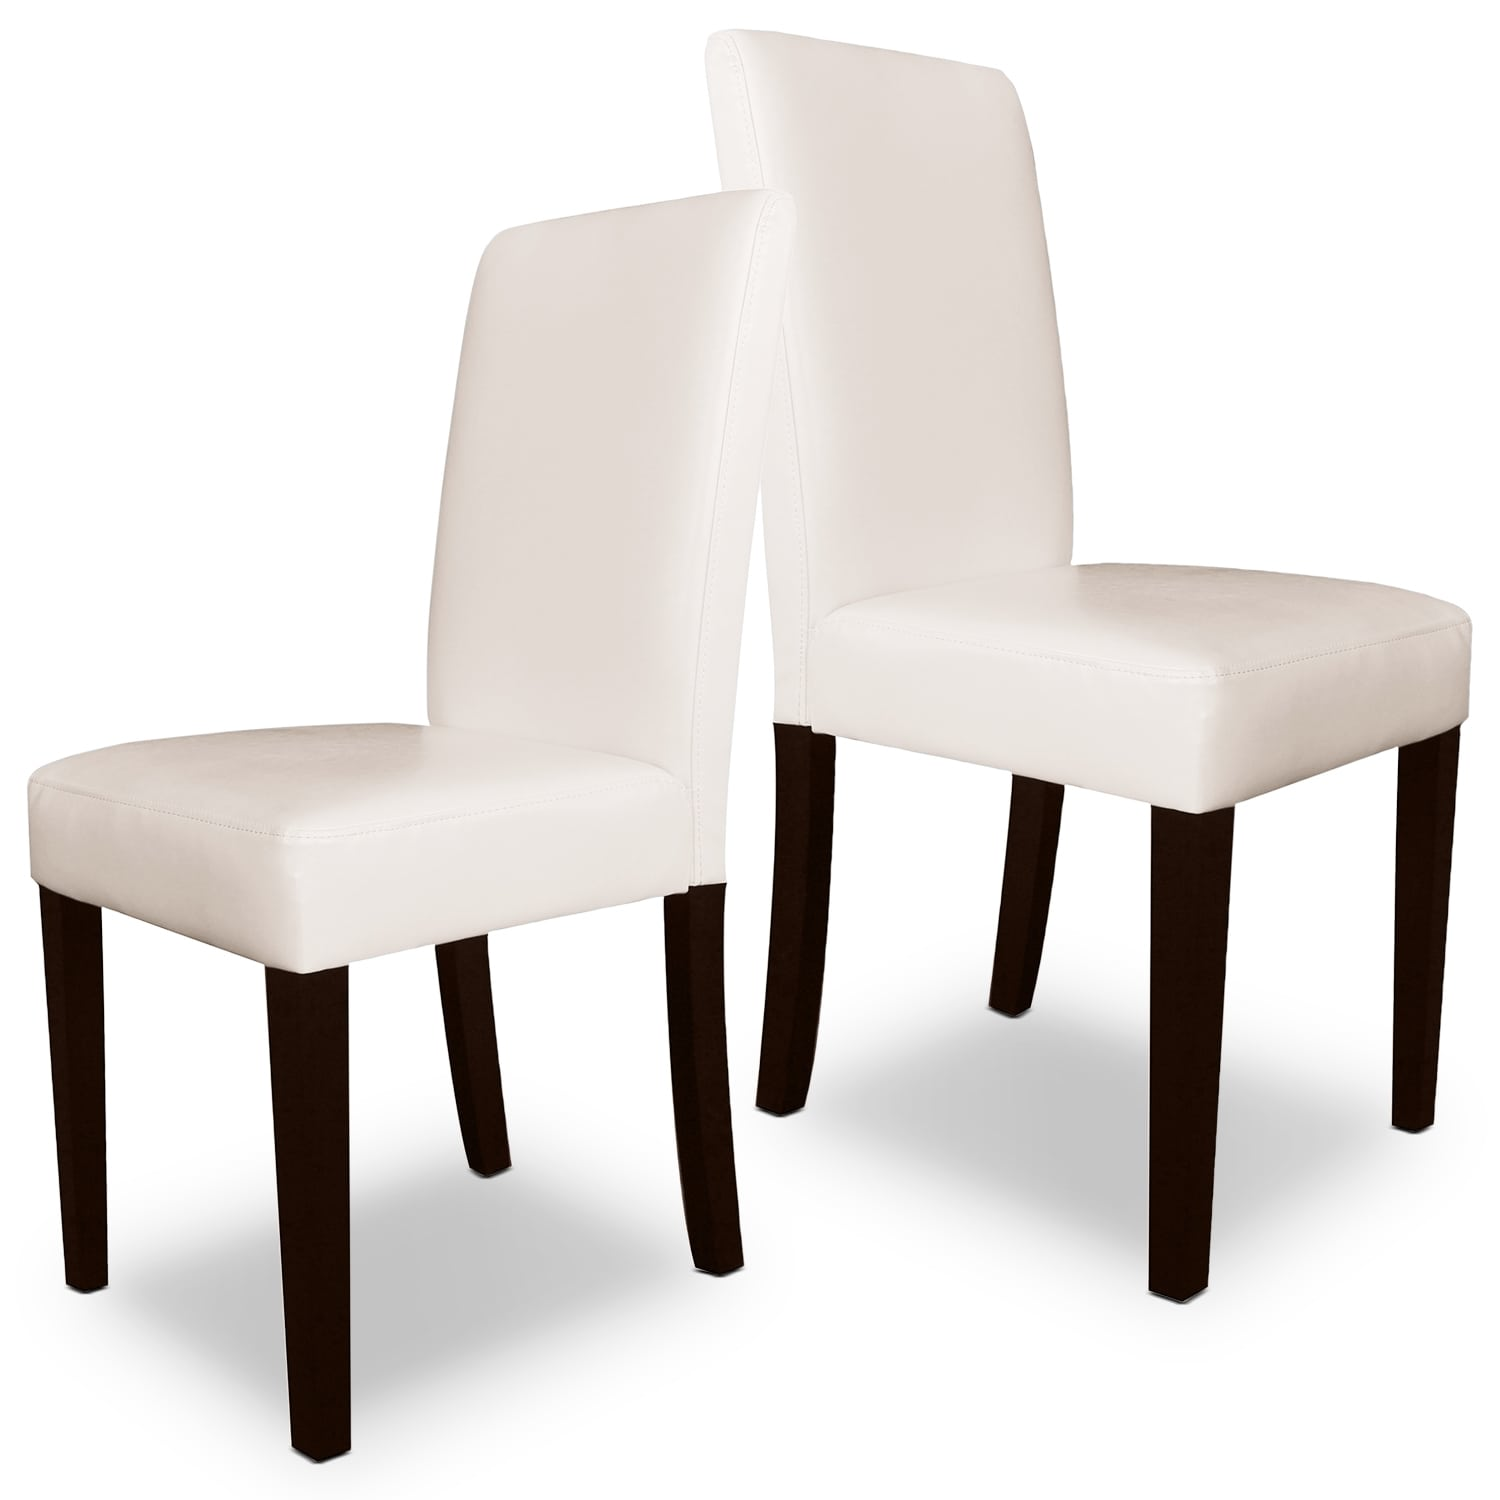 The DY6561 White Dining Collection